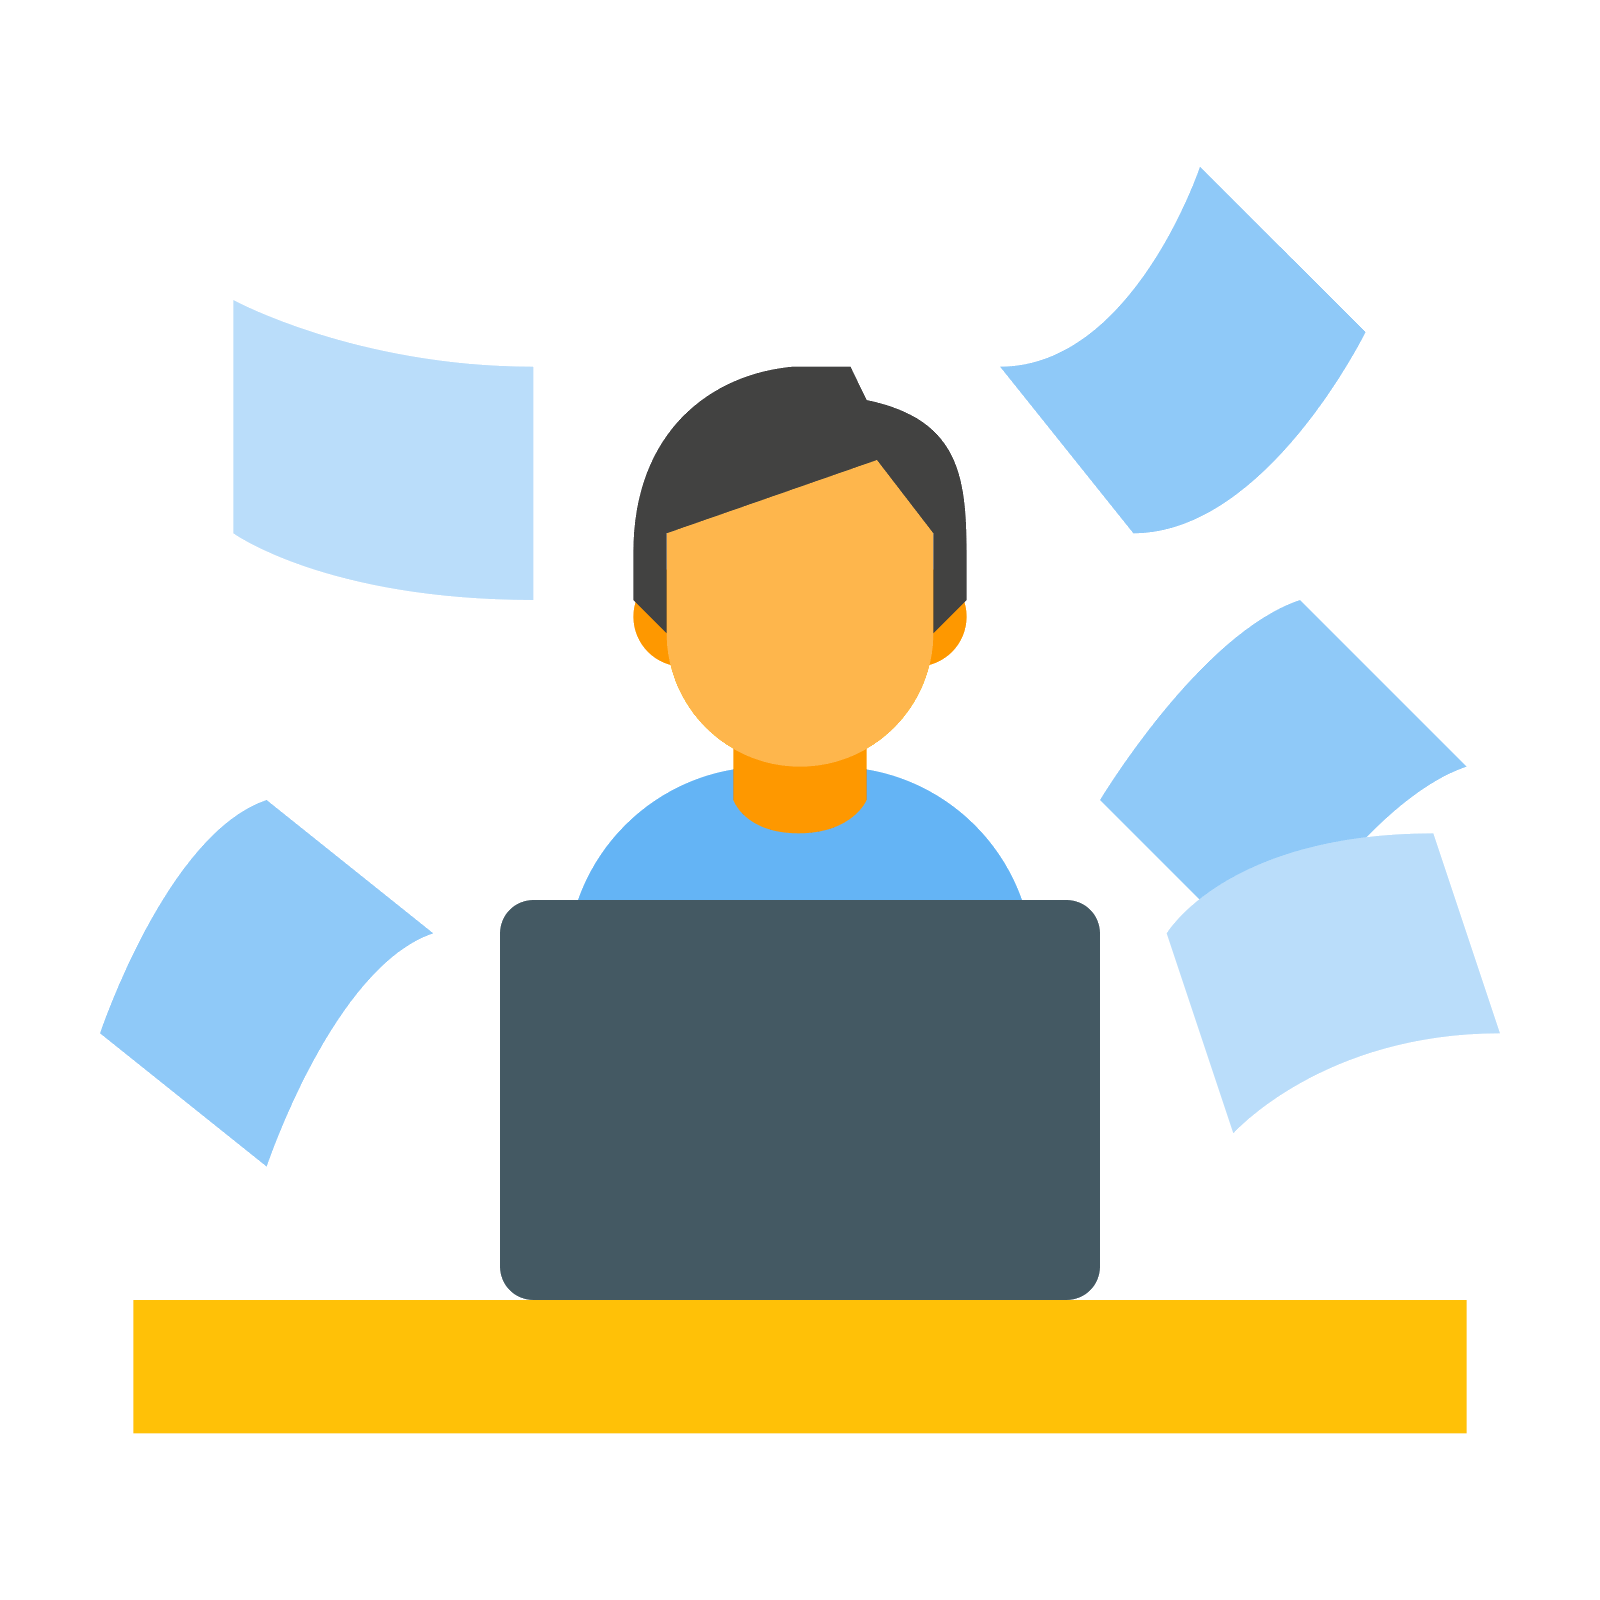 Hard working icon free. Job vector flat design png transparent download